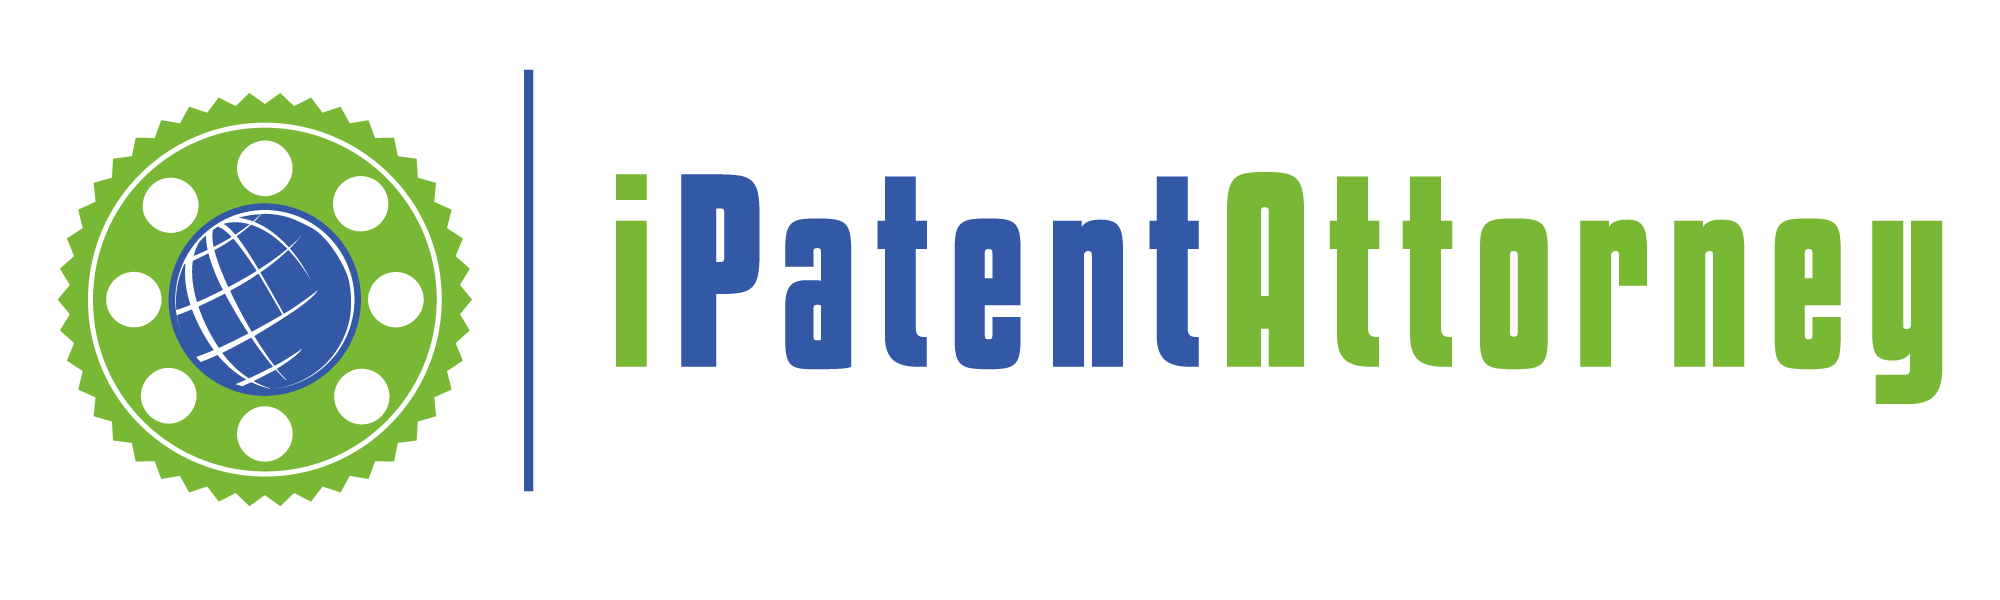 Online Patent Law Firm | Work with us from anywhere in the United States